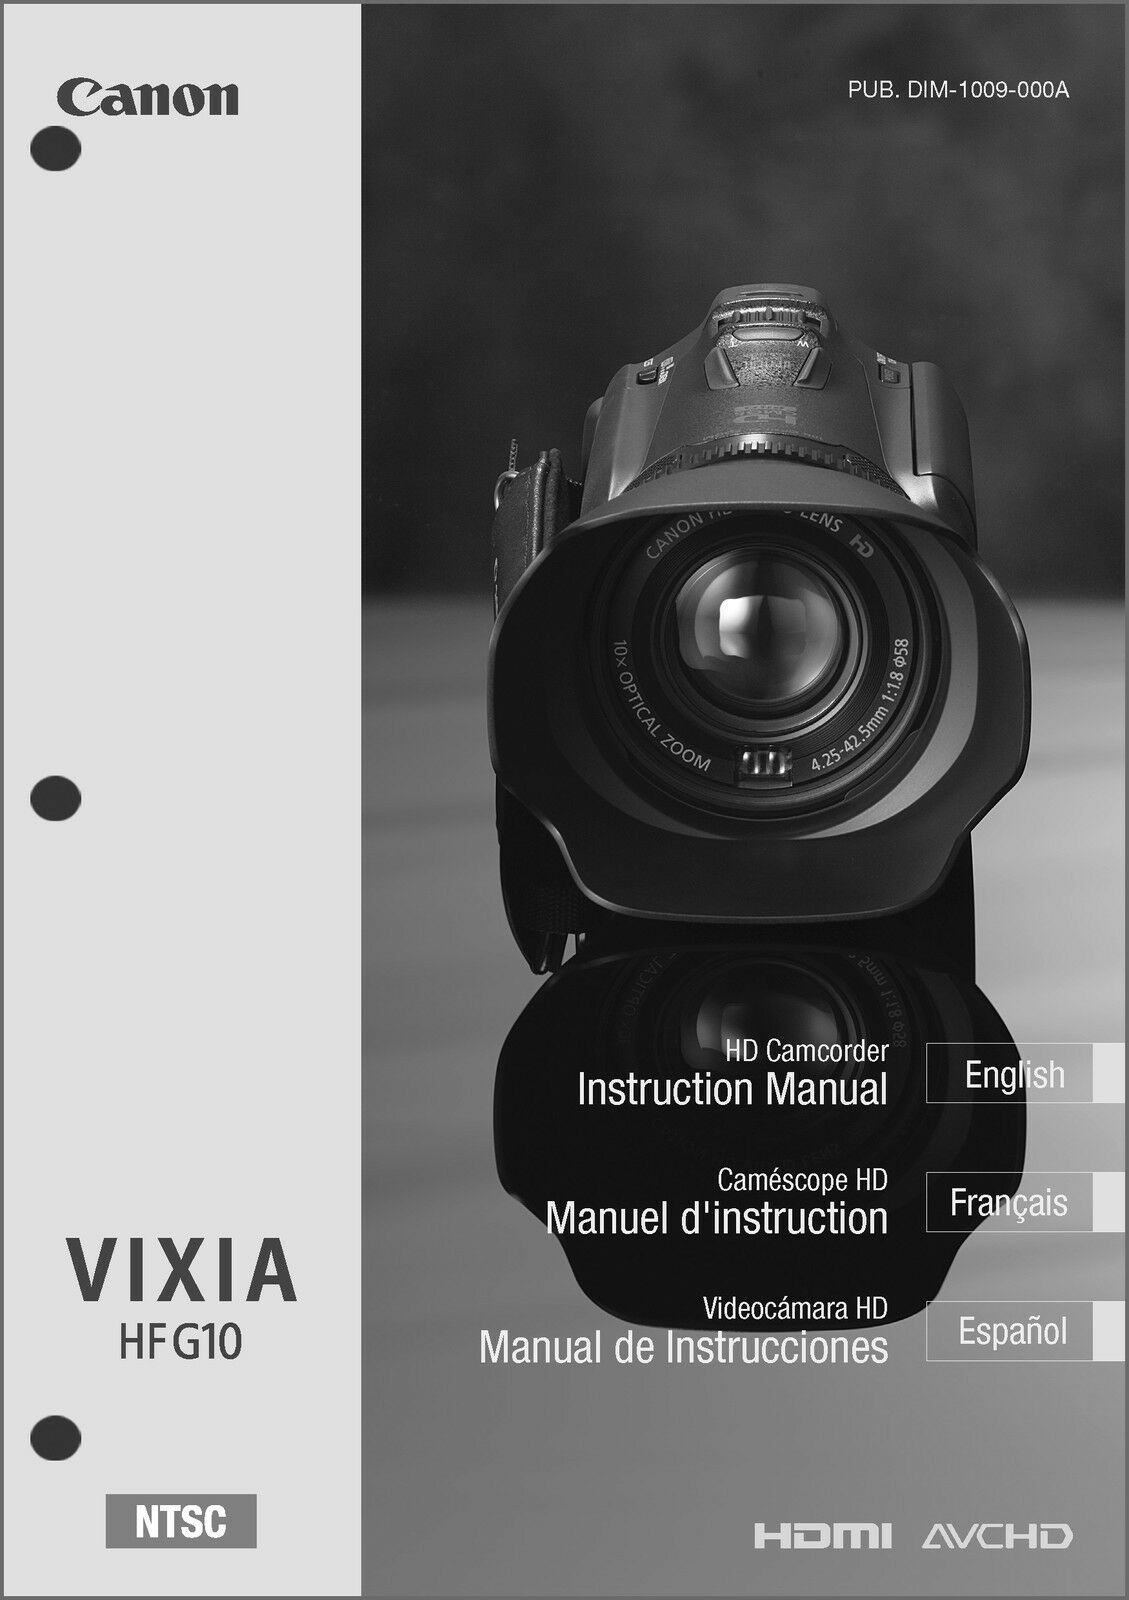 canon vixia hf g10 camcorder user instruction guide manual 9 95 rh picclick com Canon VIXIA HF M41 Canon VIXIA HF R400 Microphones